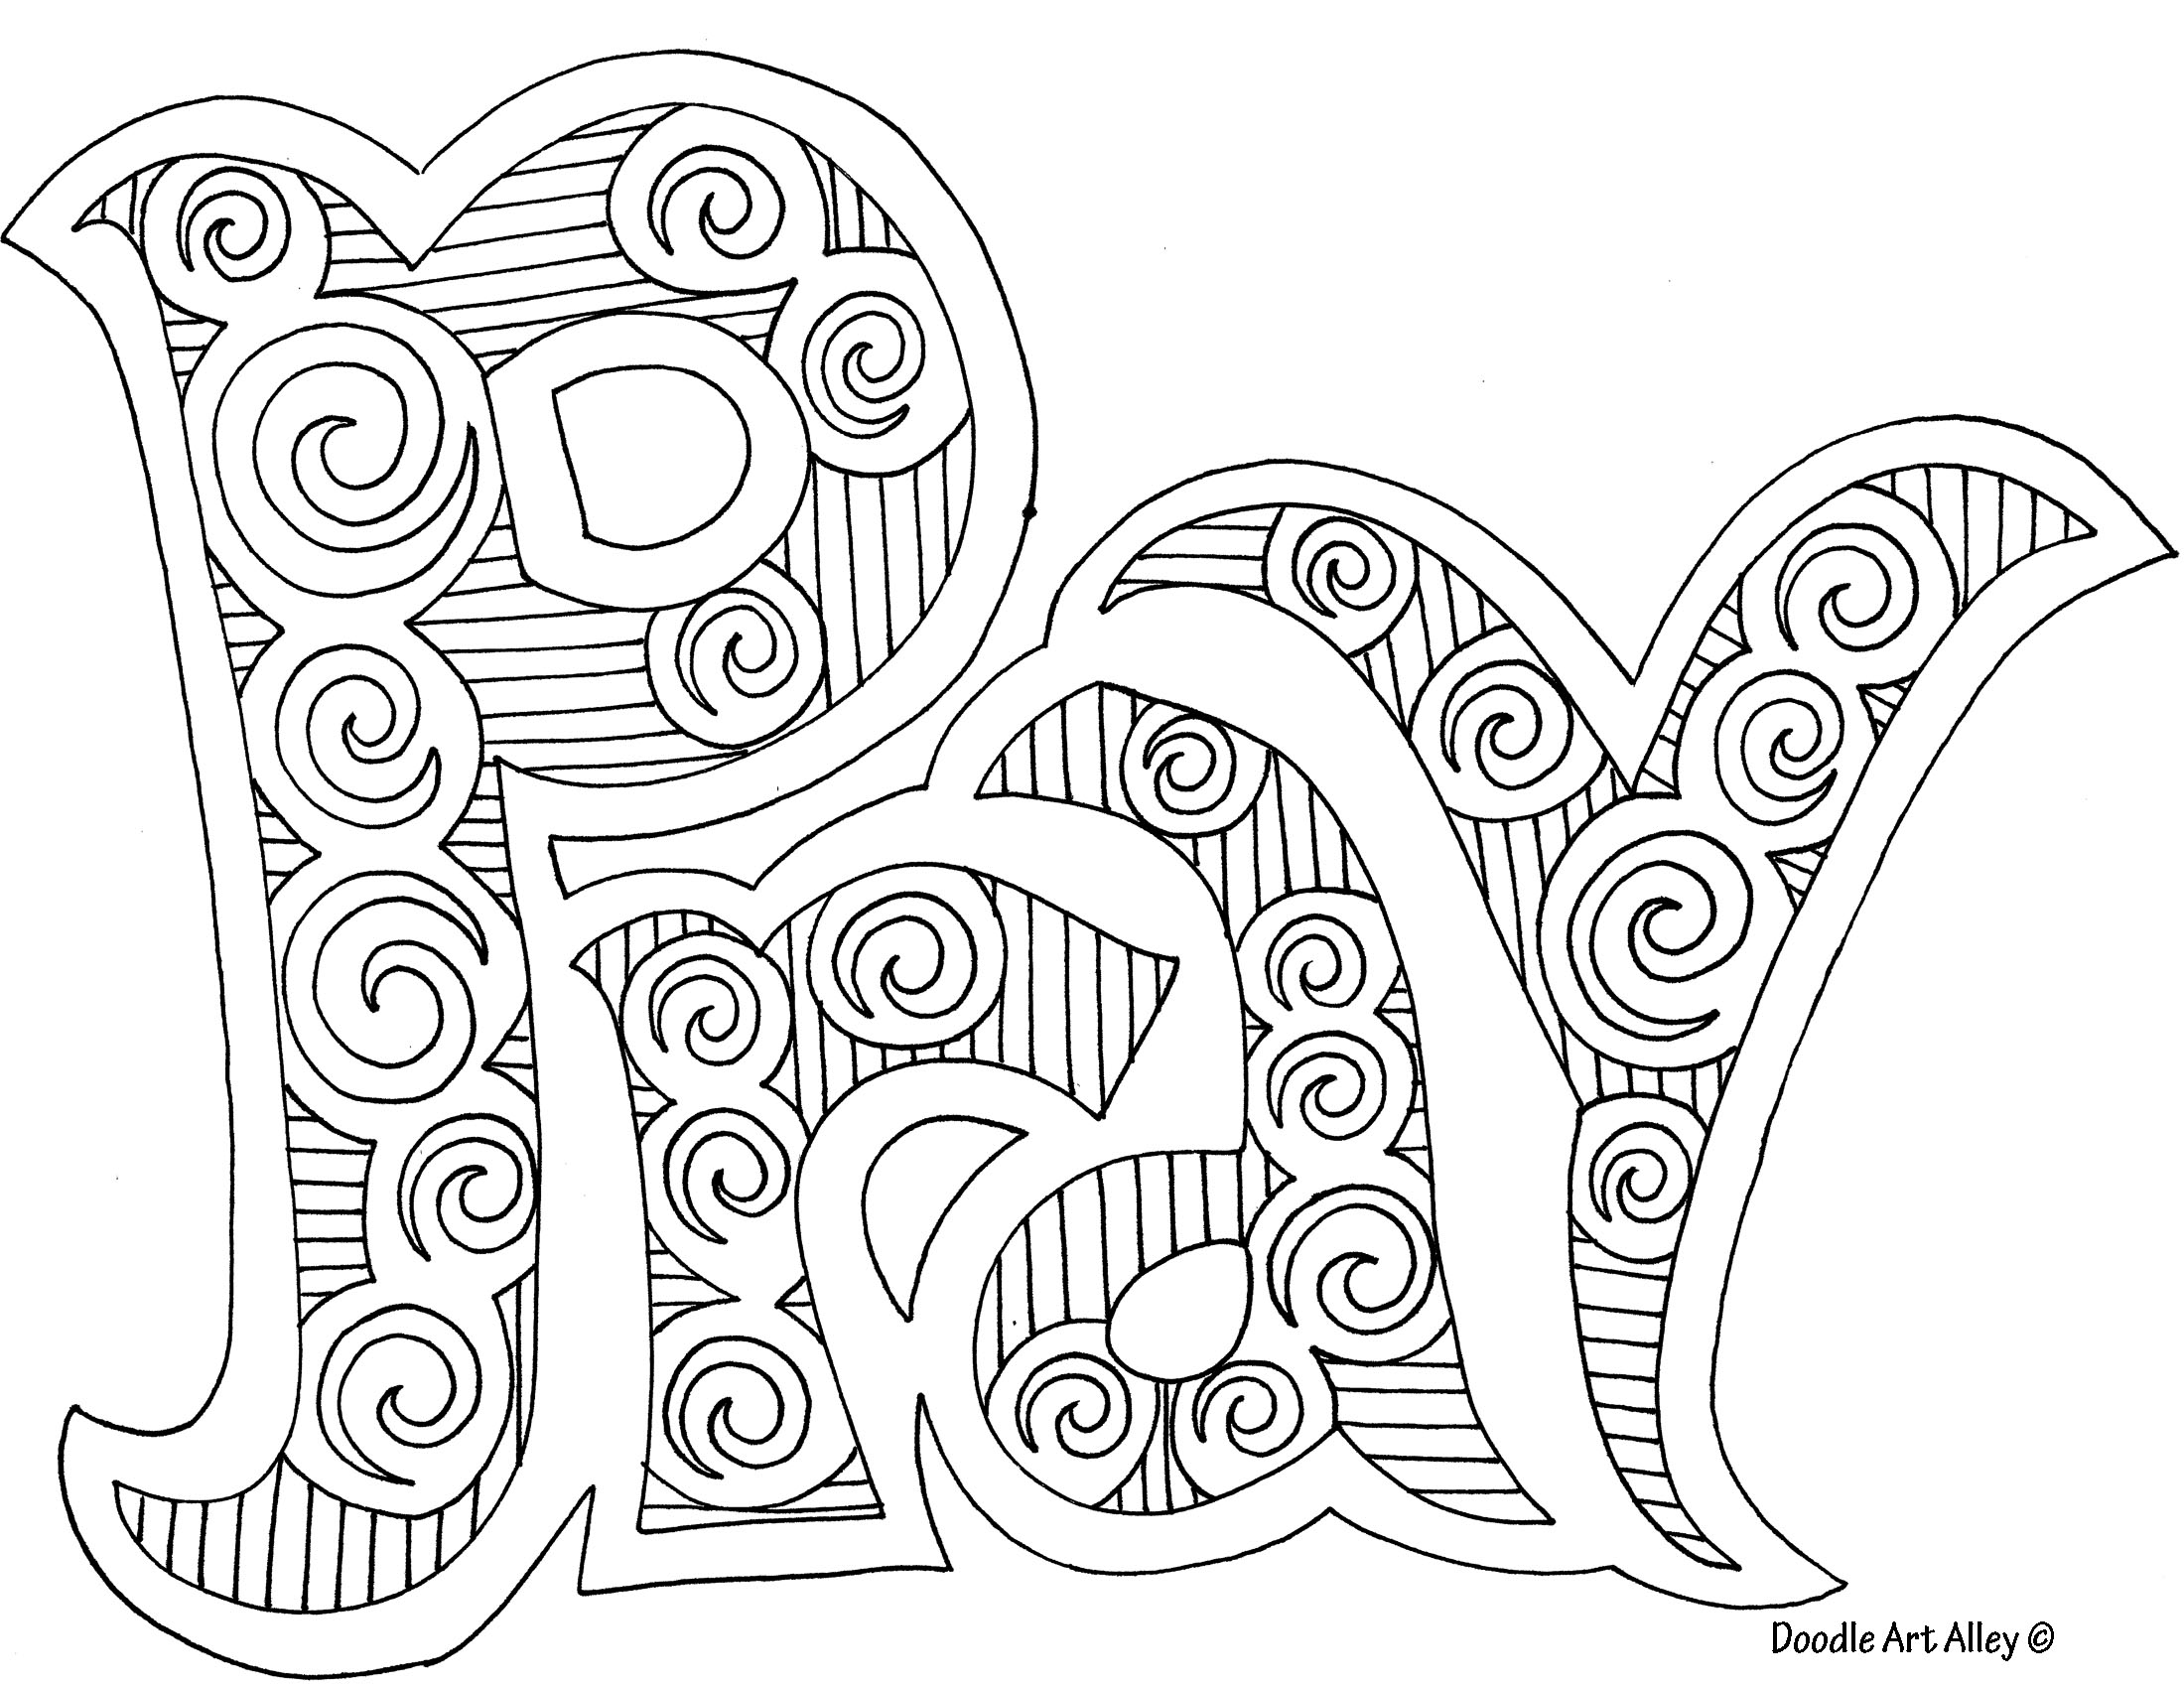 Religious Coloring Pages For Kids Coloring Ideas Printable Religious Coloring Pages At Getdrawings